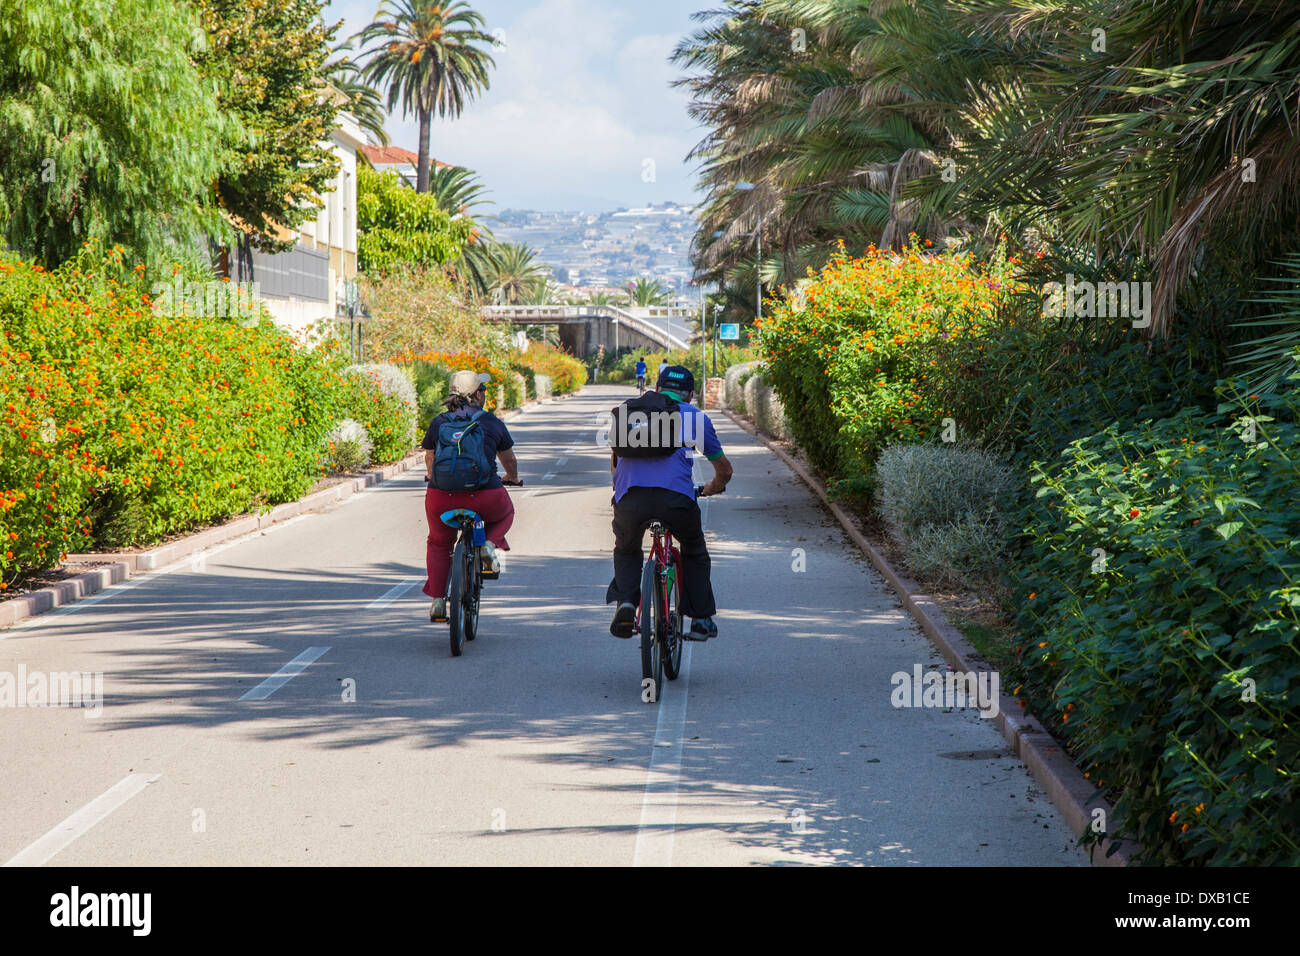 San Remo to Imperia cycle path, Liguria, Italy - Stock Image